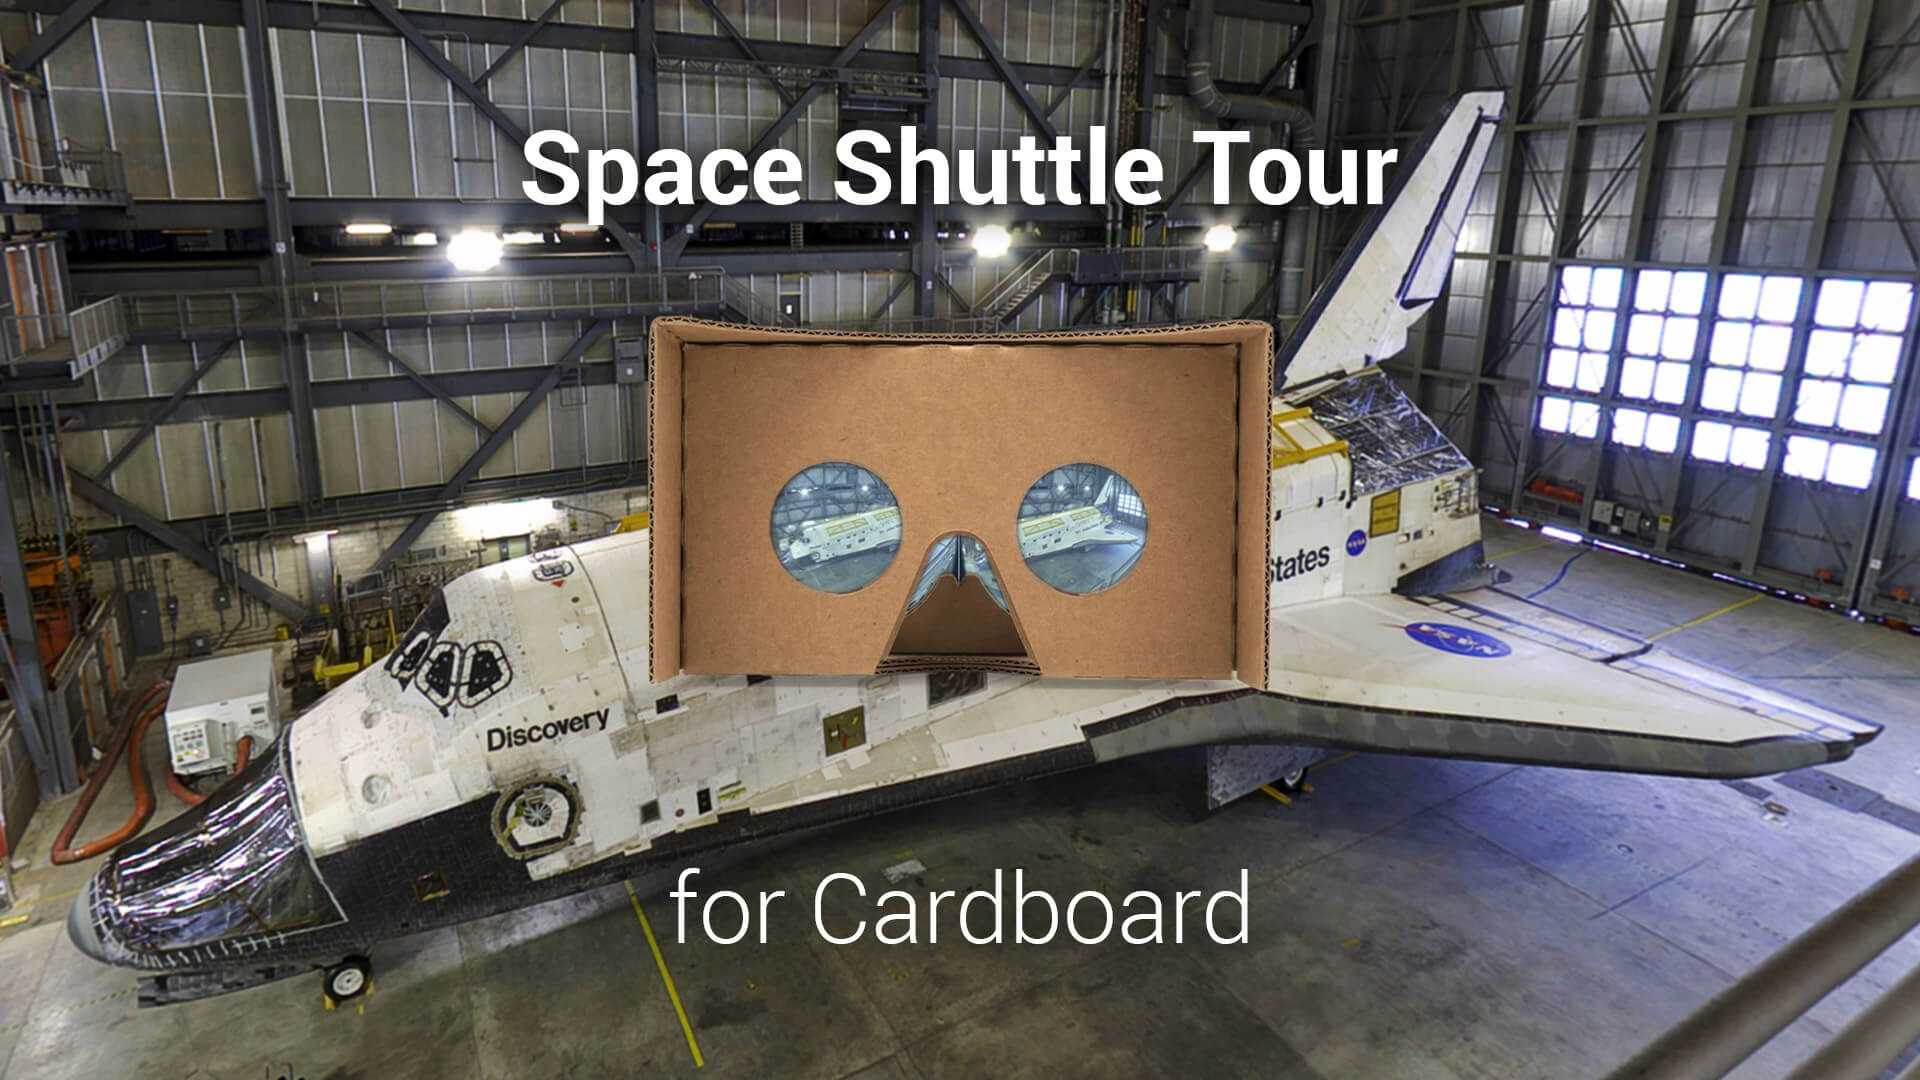 Space Shuttle Tour Cardboard